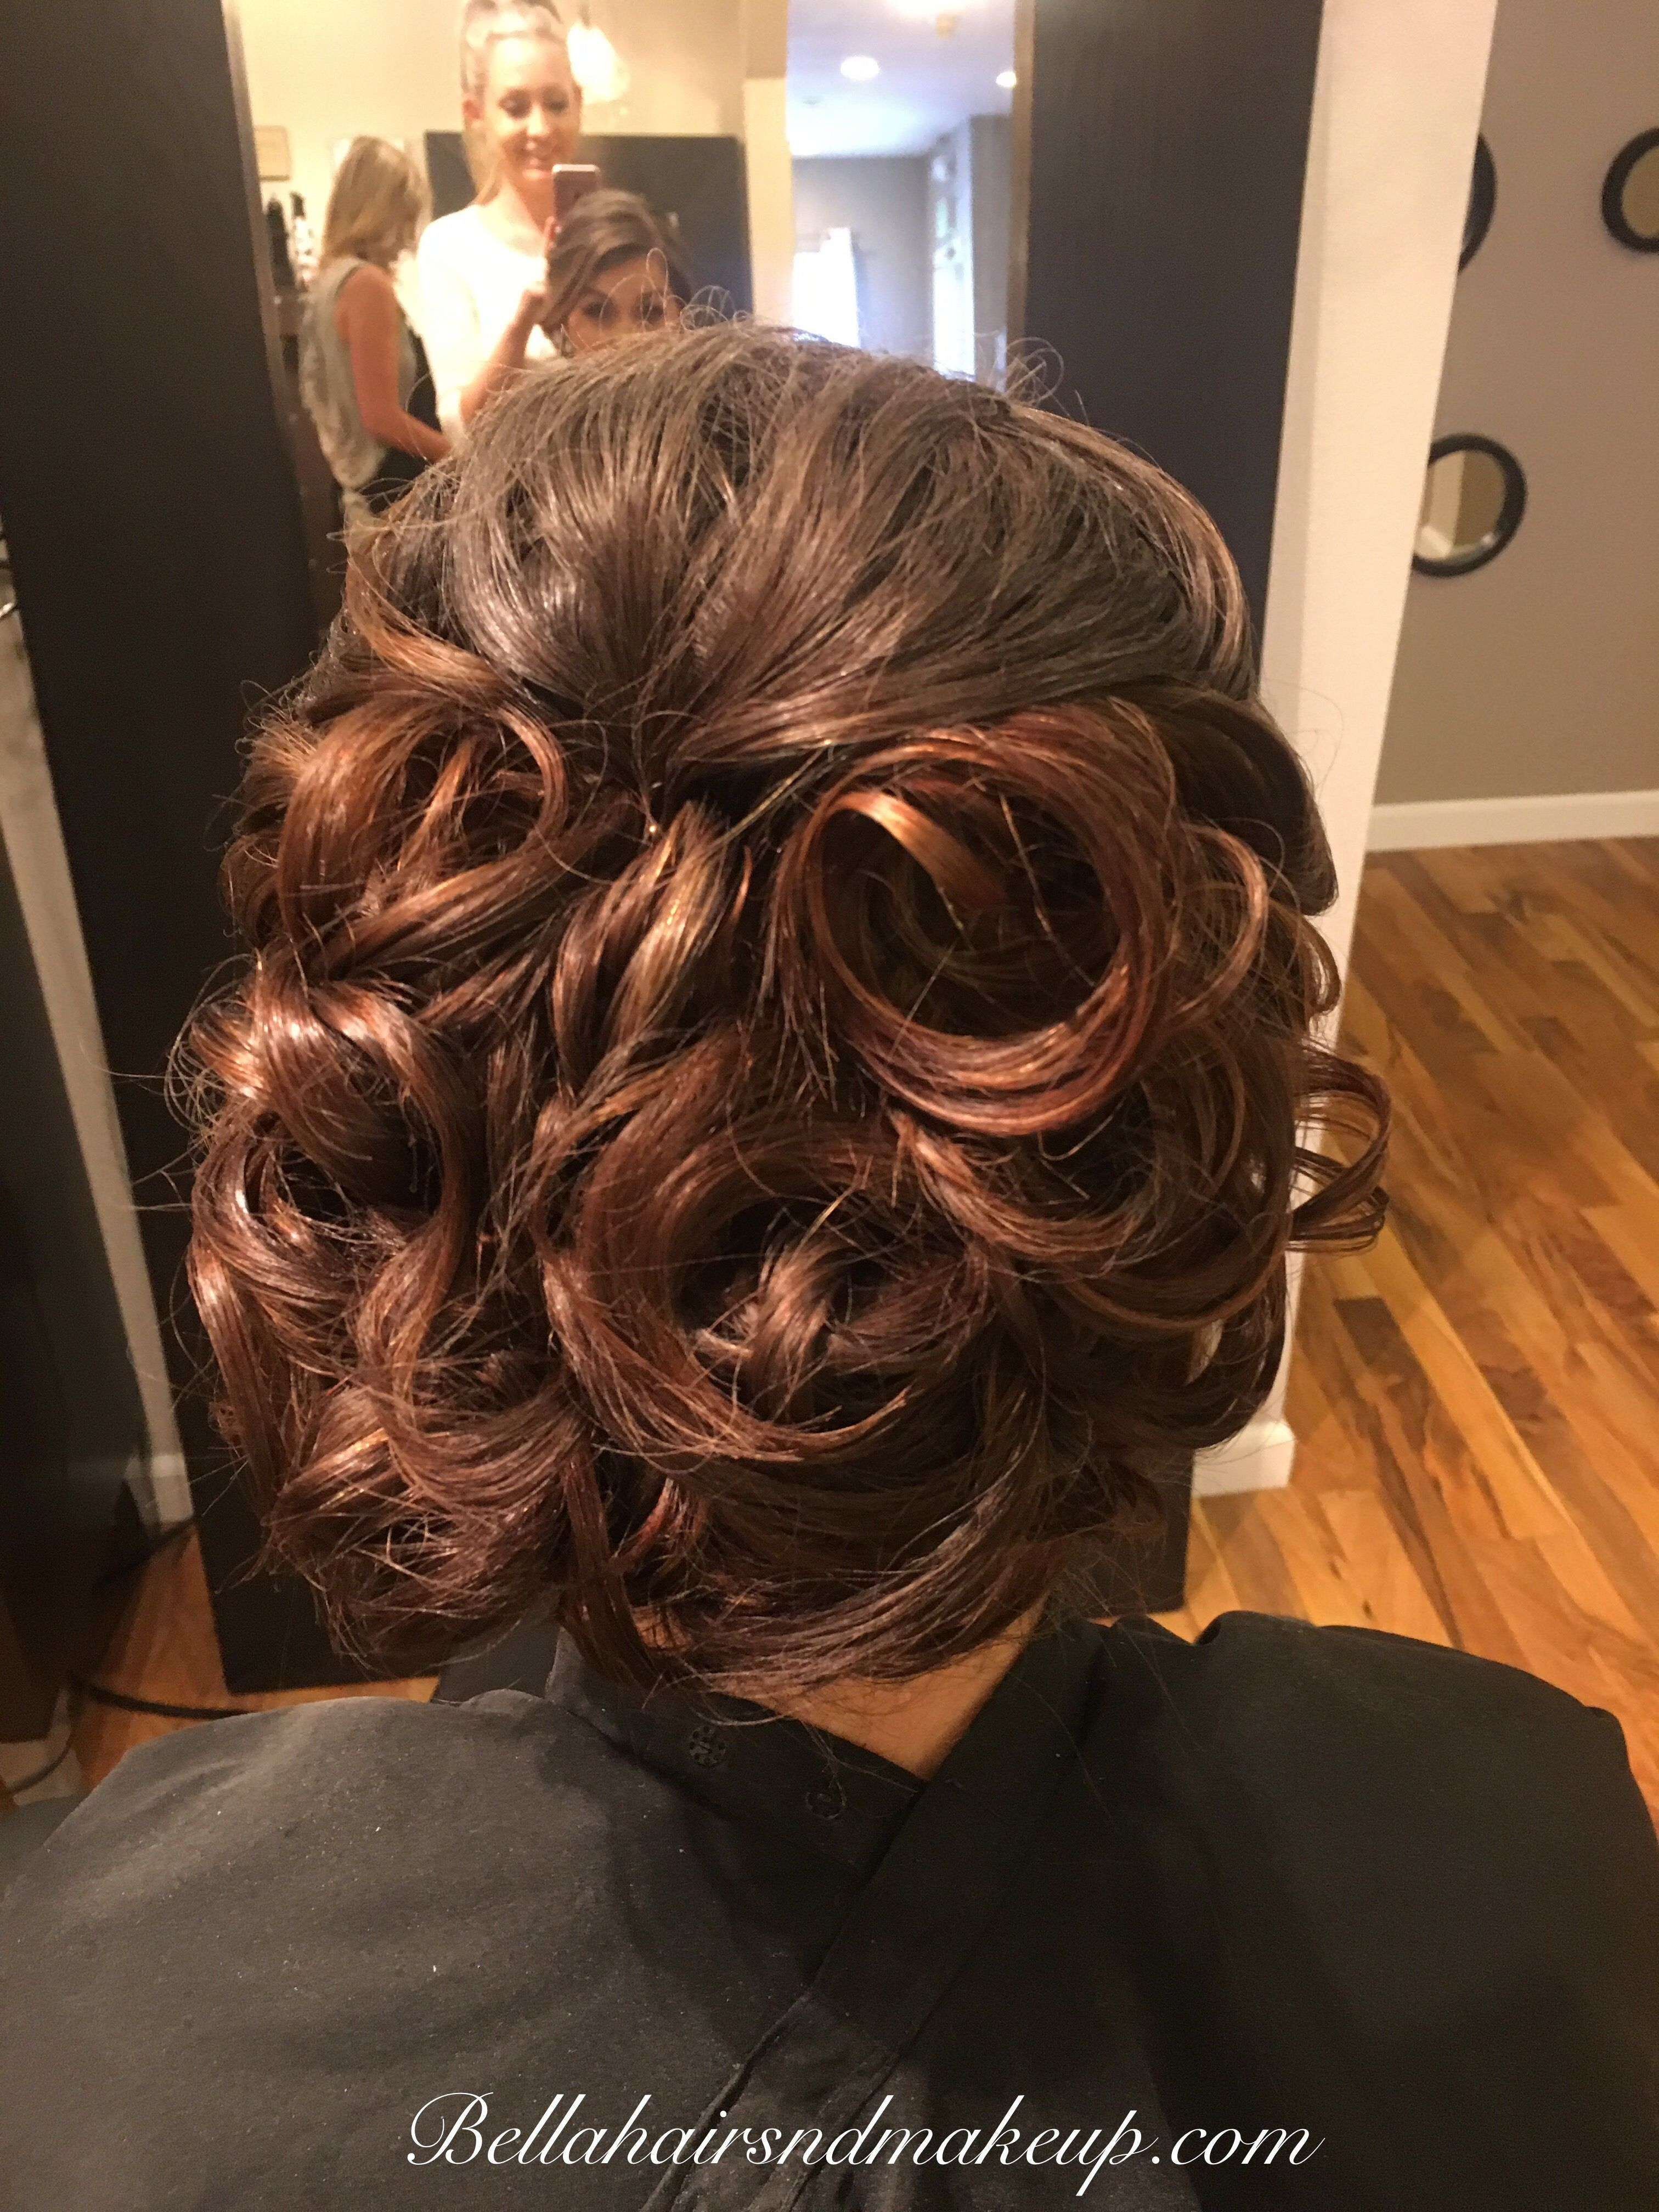 Whitney Renee Anderson Orme updo hair  makeup